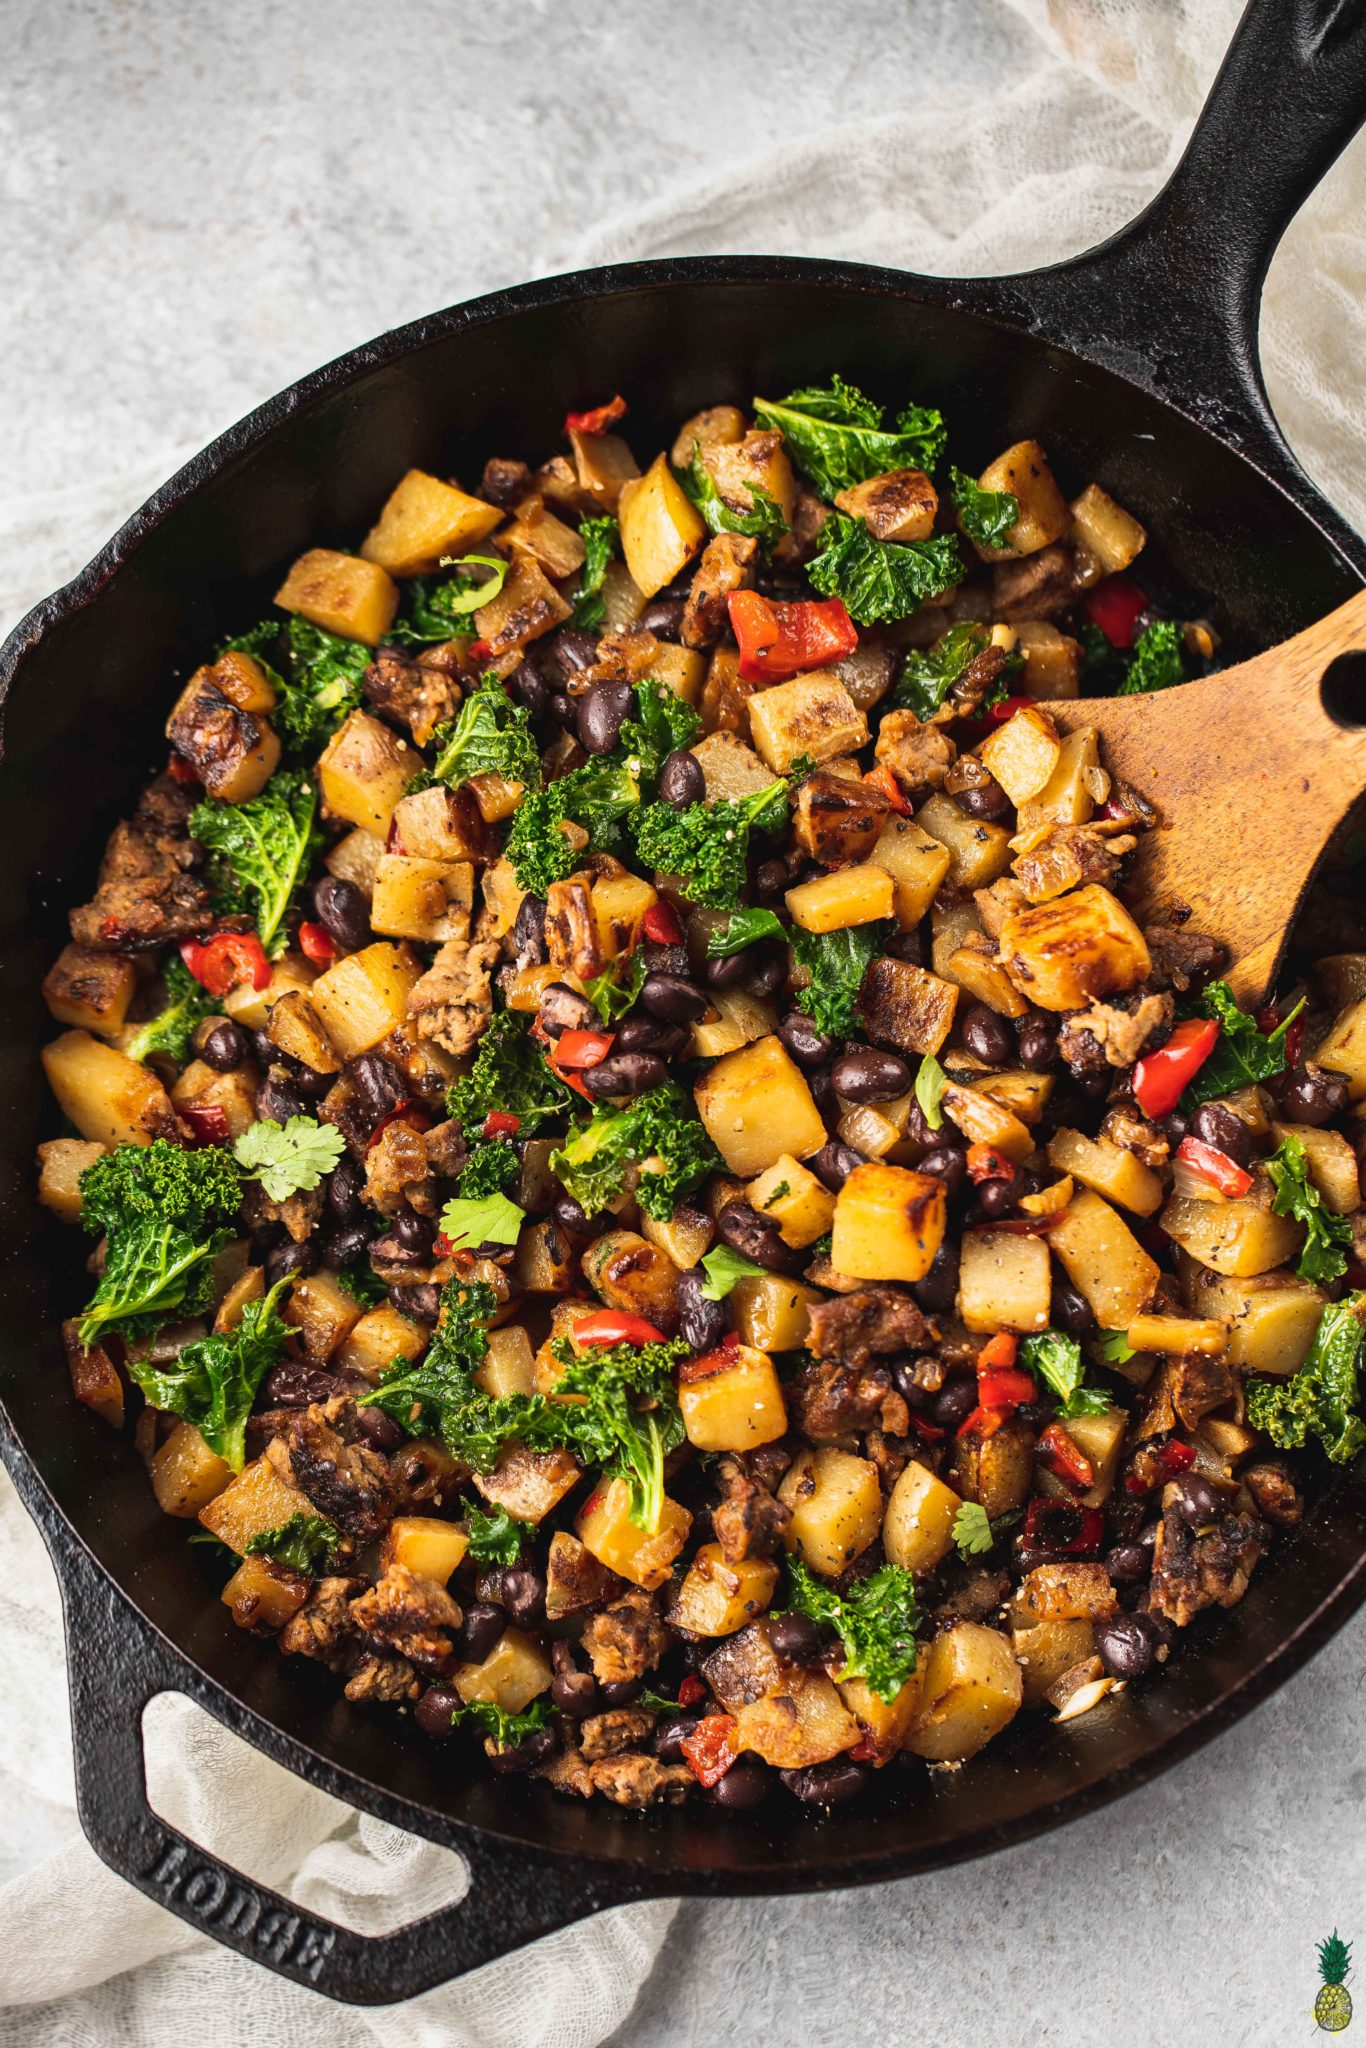 Breakfast hash in a large skillet.